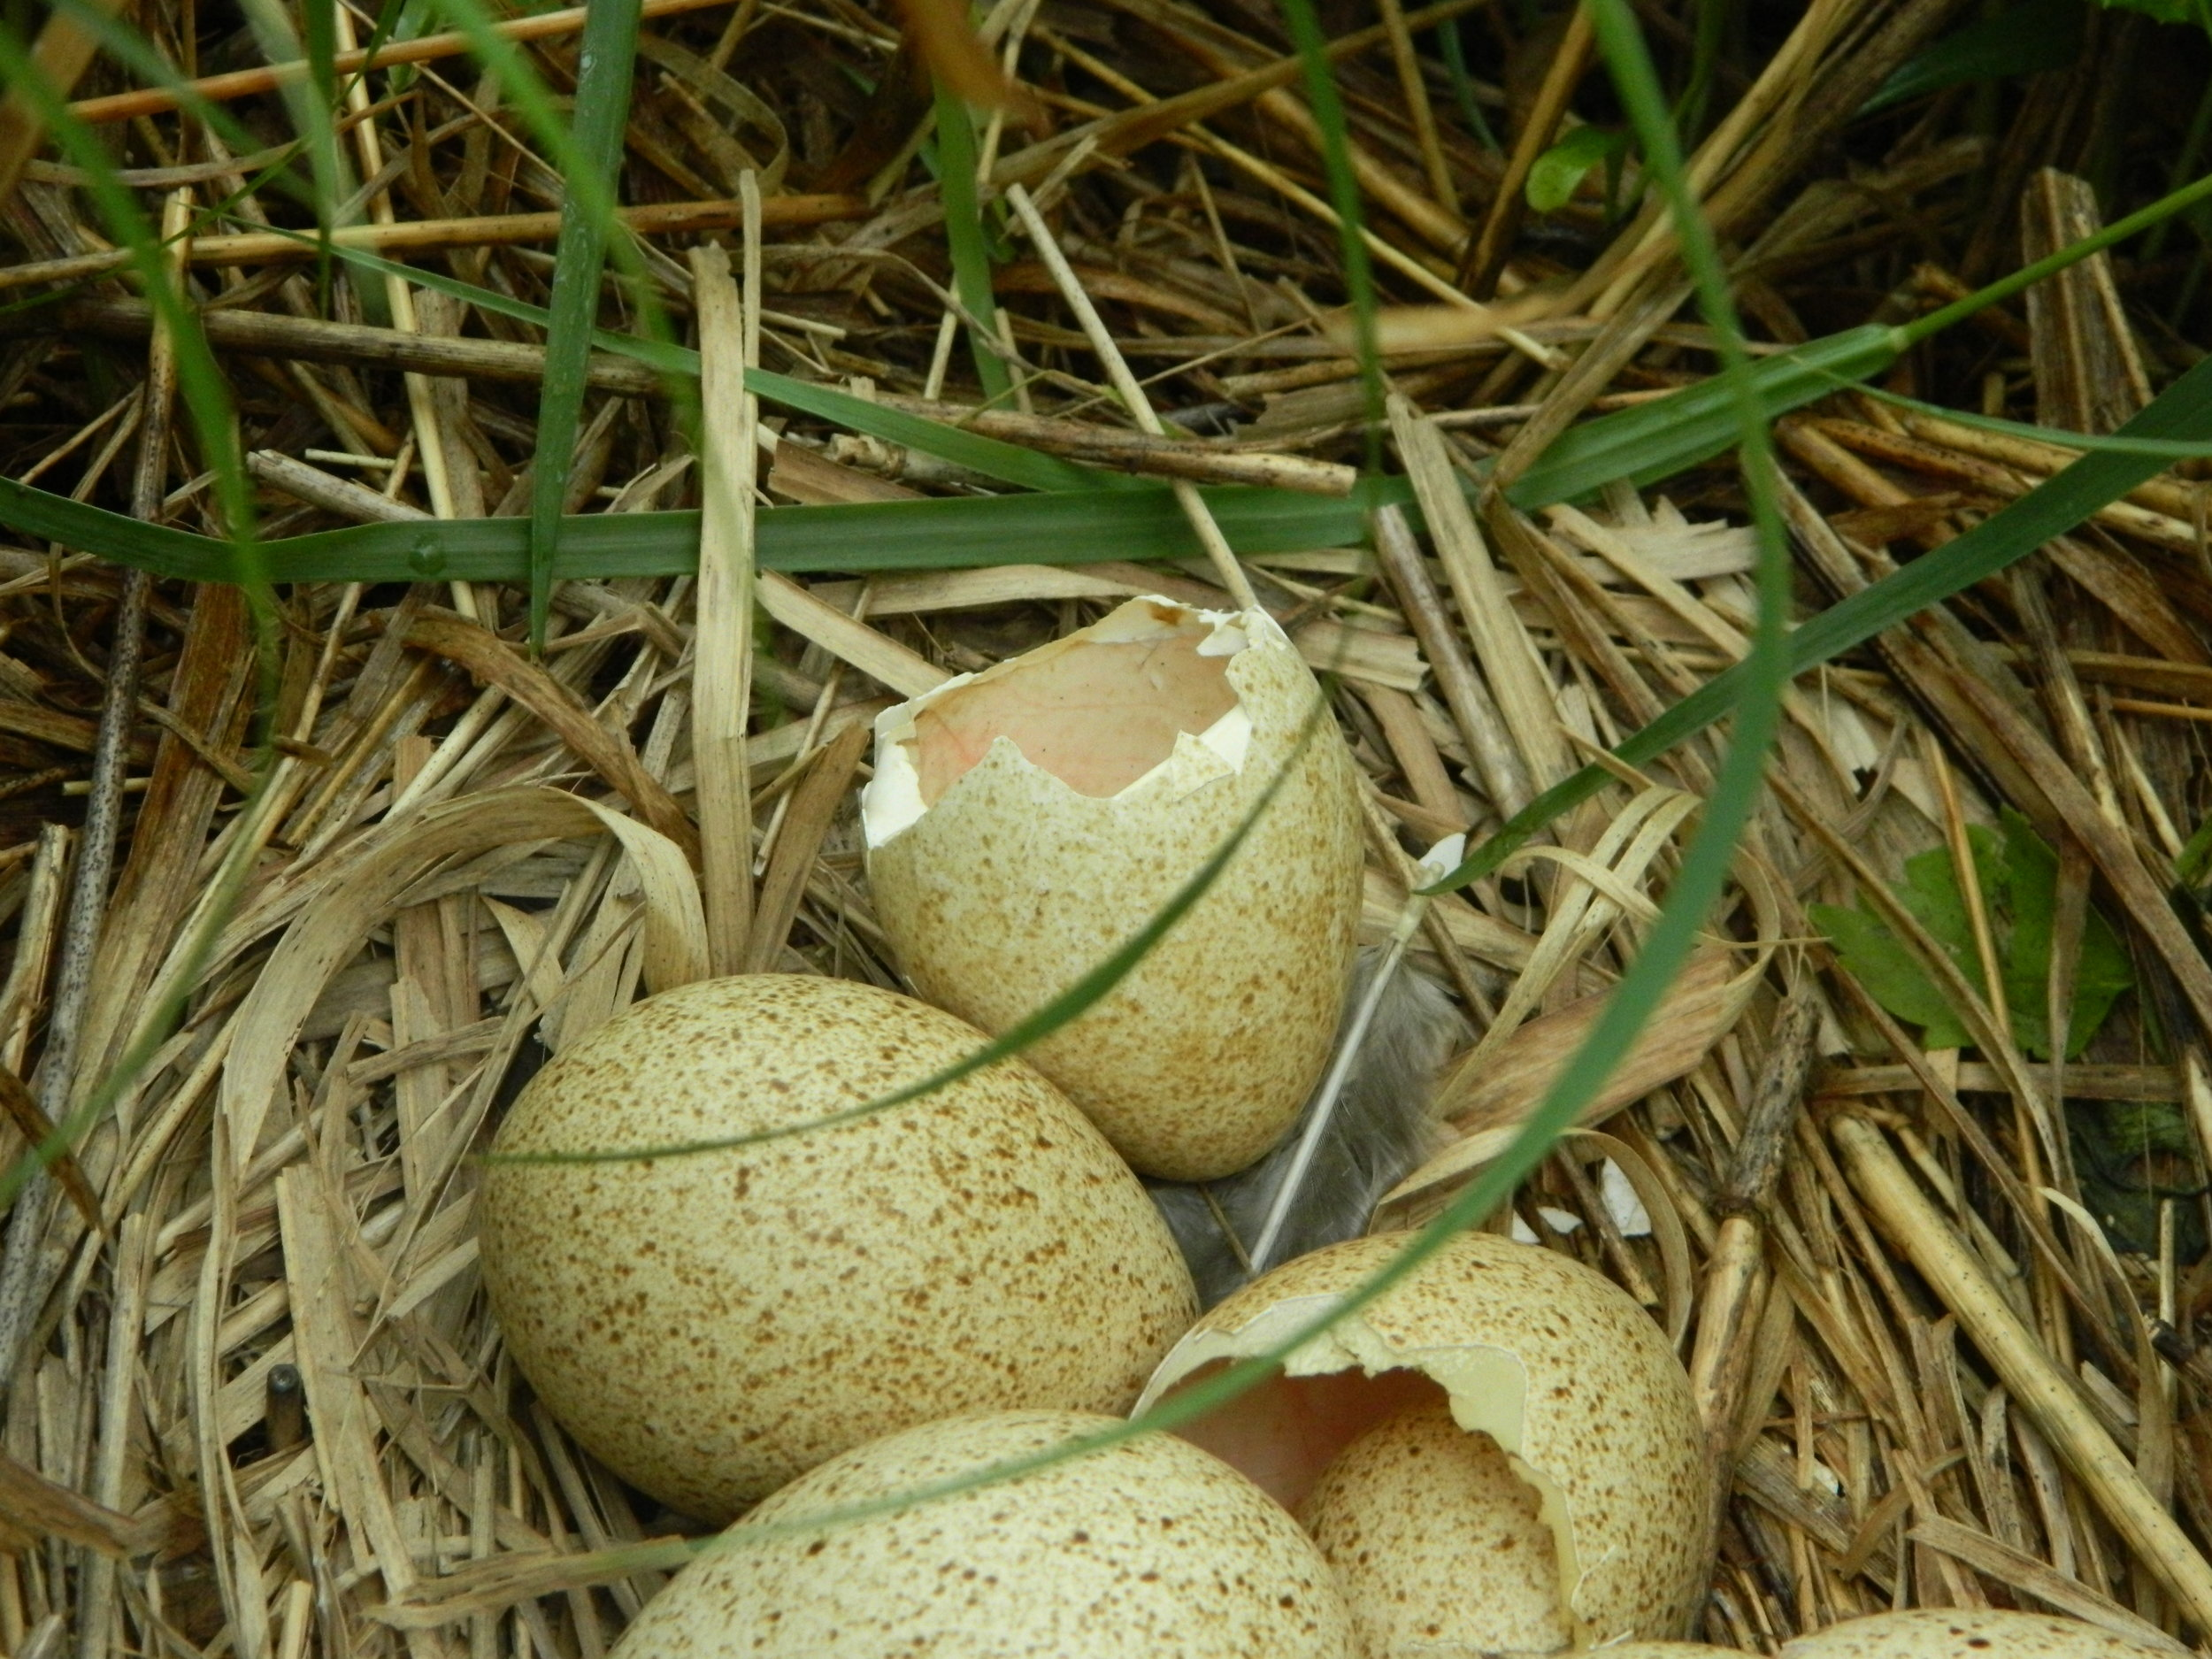 These wild turkey eggs are beautiful examples of neatly split shells. Photo by Carolyn Byers.